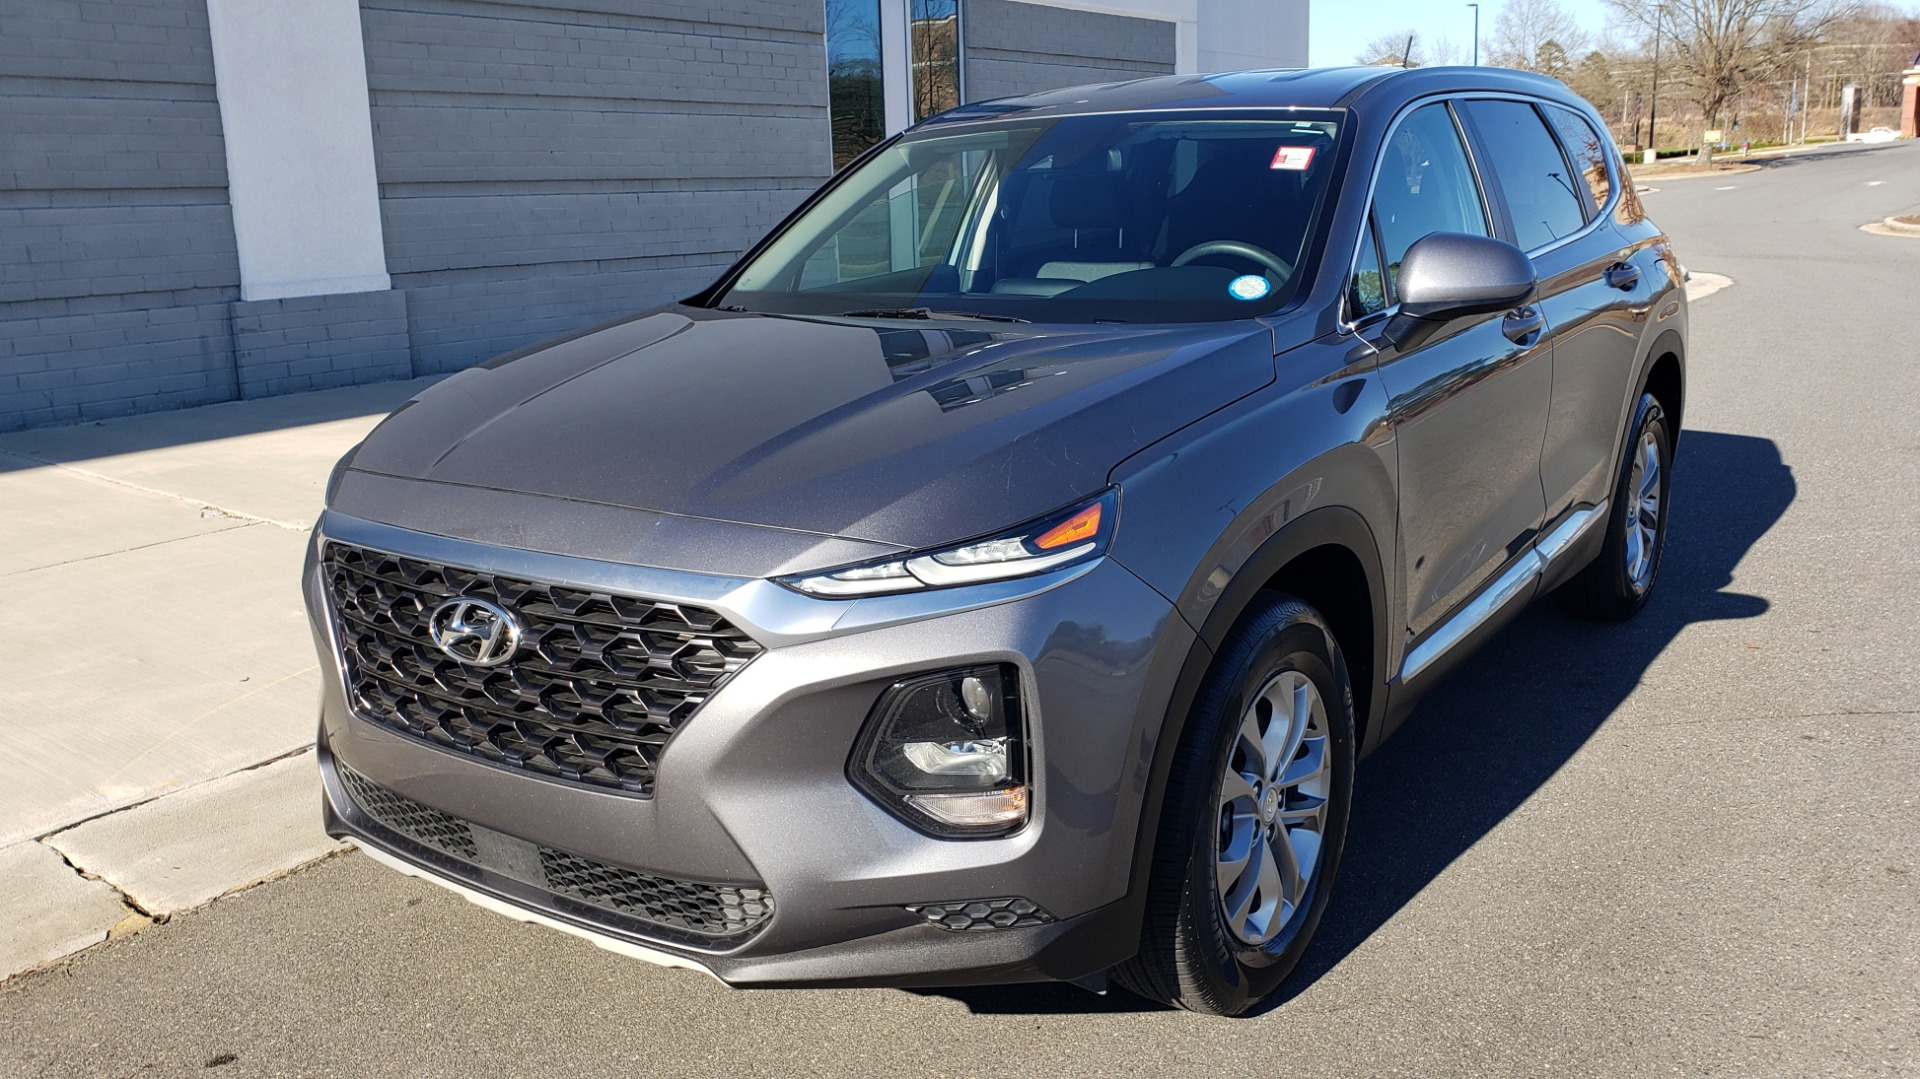 Used 2019 Hyundai SANTA FE SE / 2.4L 4-CYL / 8-SPD AUTO / BLIND SPOT / LANE KEEP ASSIST for sale Sold at Formula Imports in Charlotte NC 28227 4